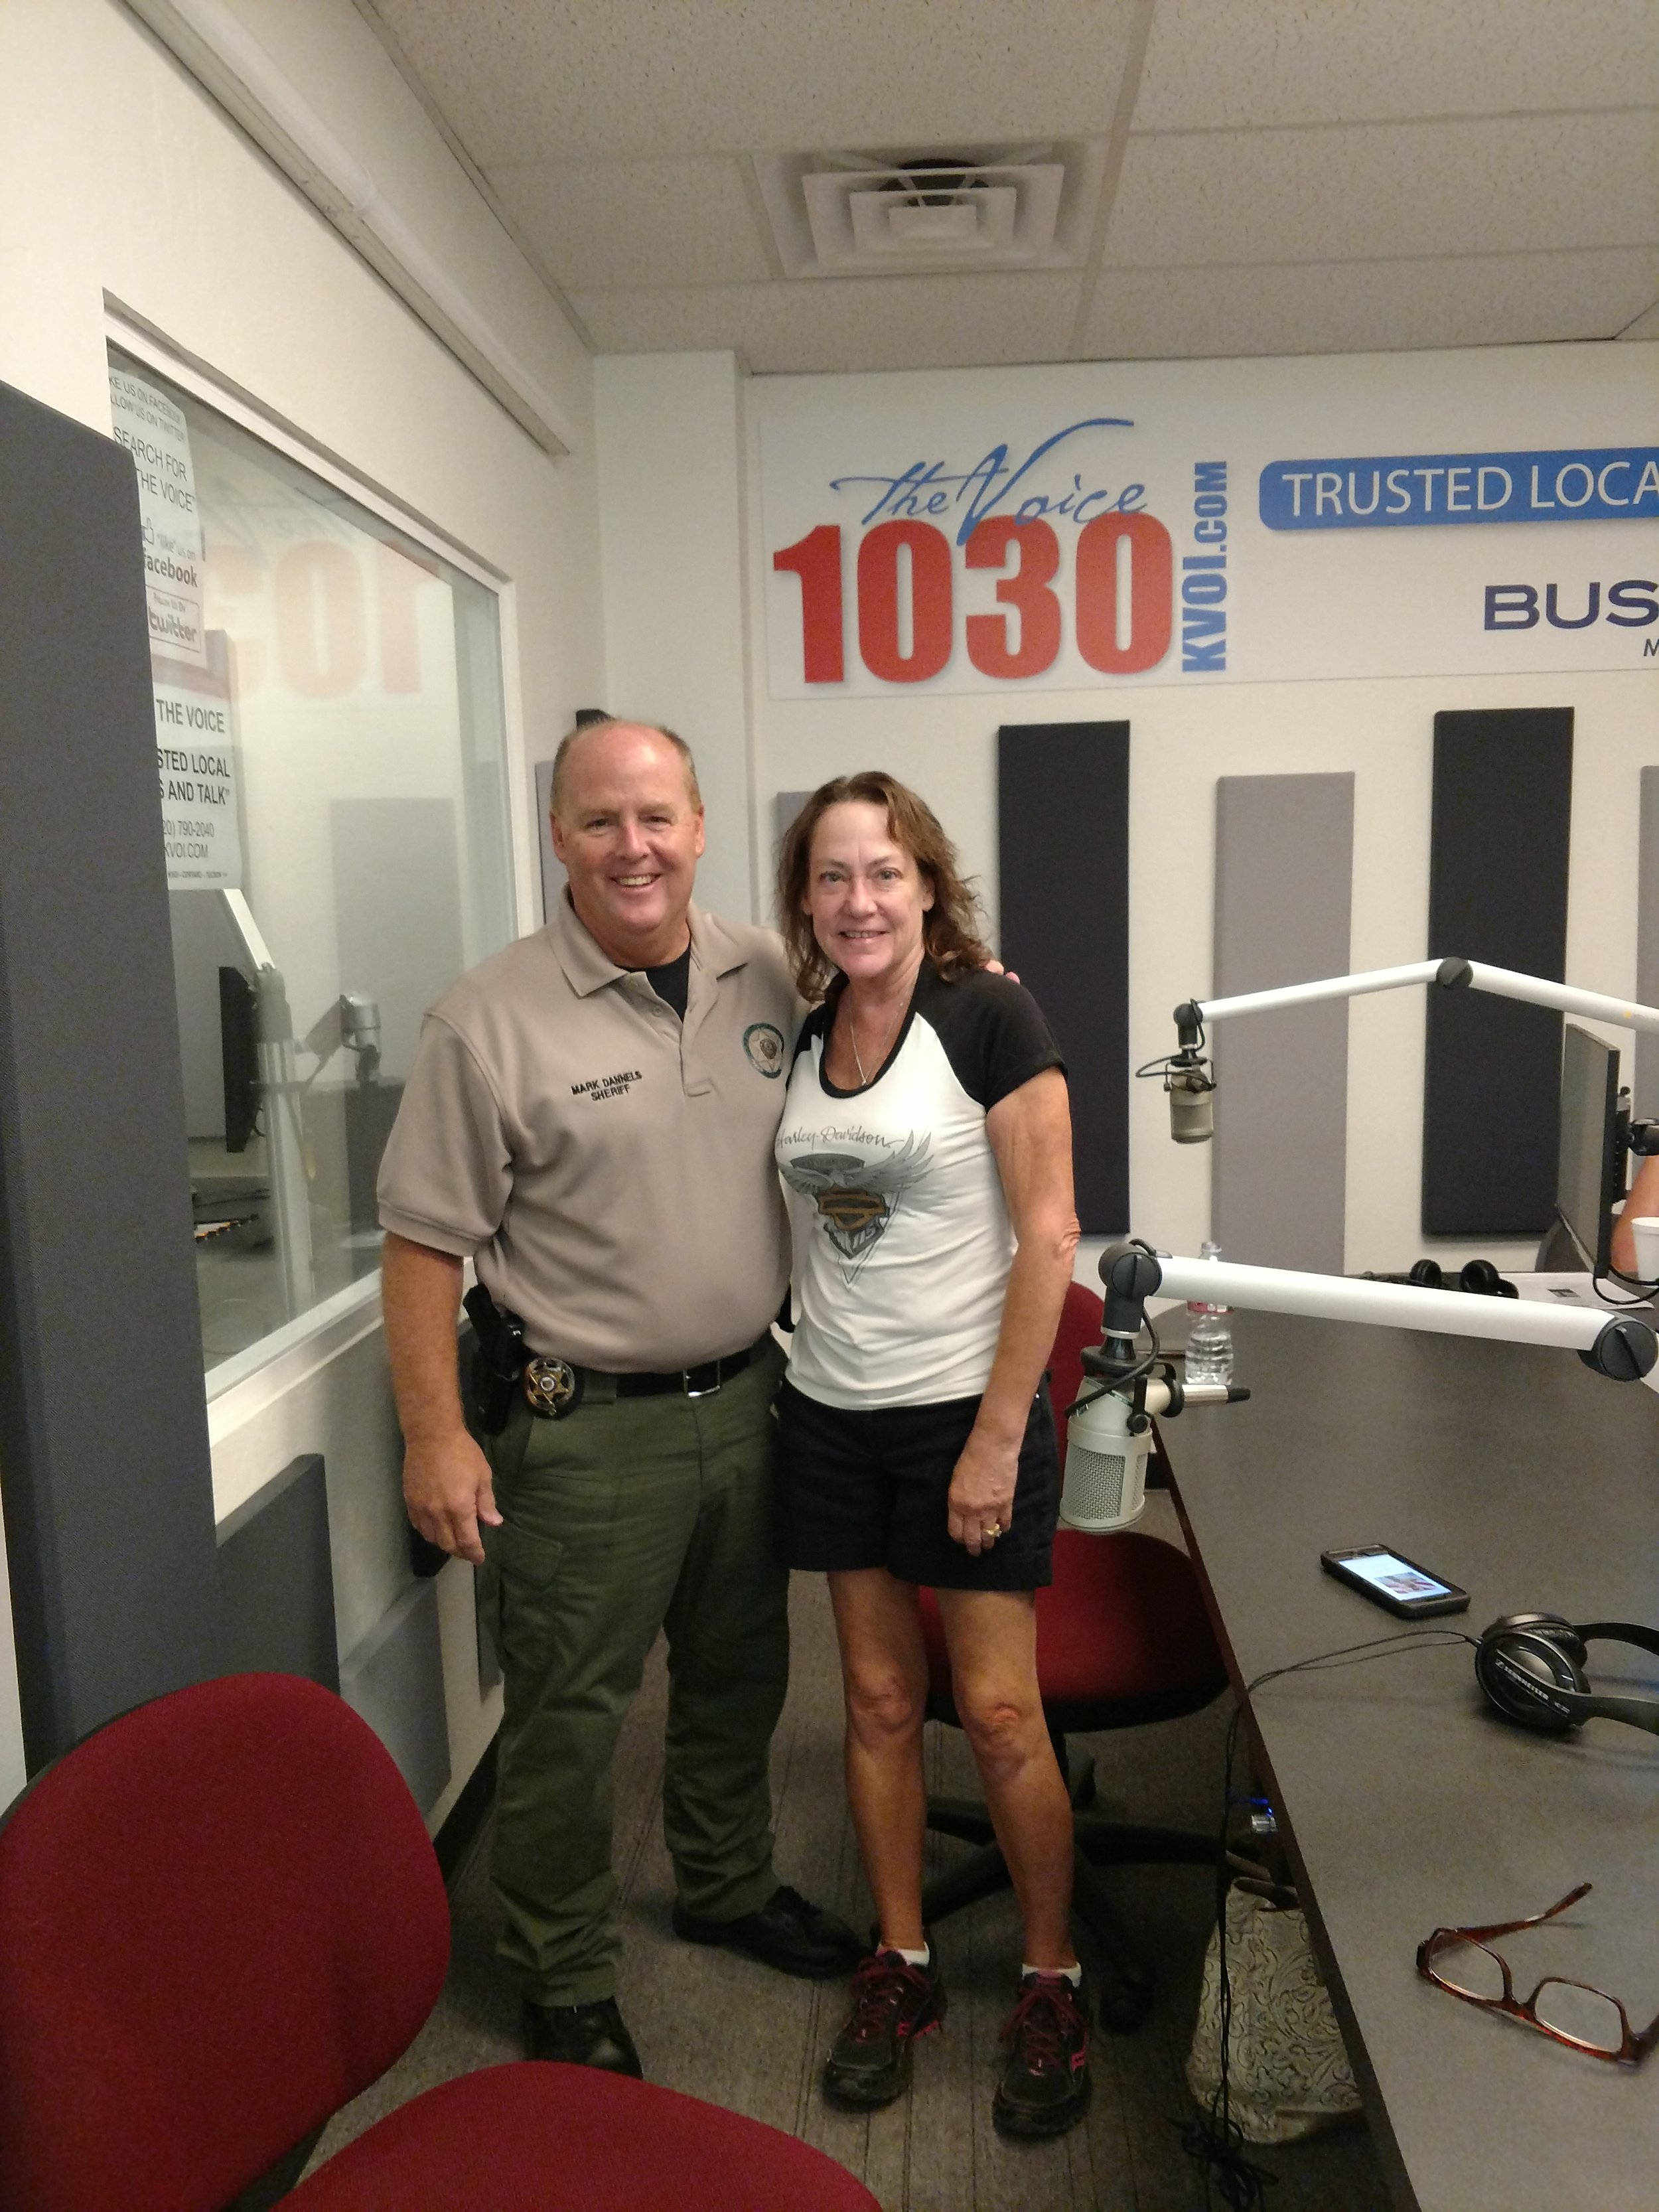 Cochise county sheriff Mark Dannels with Law Matters board Pres Annette.